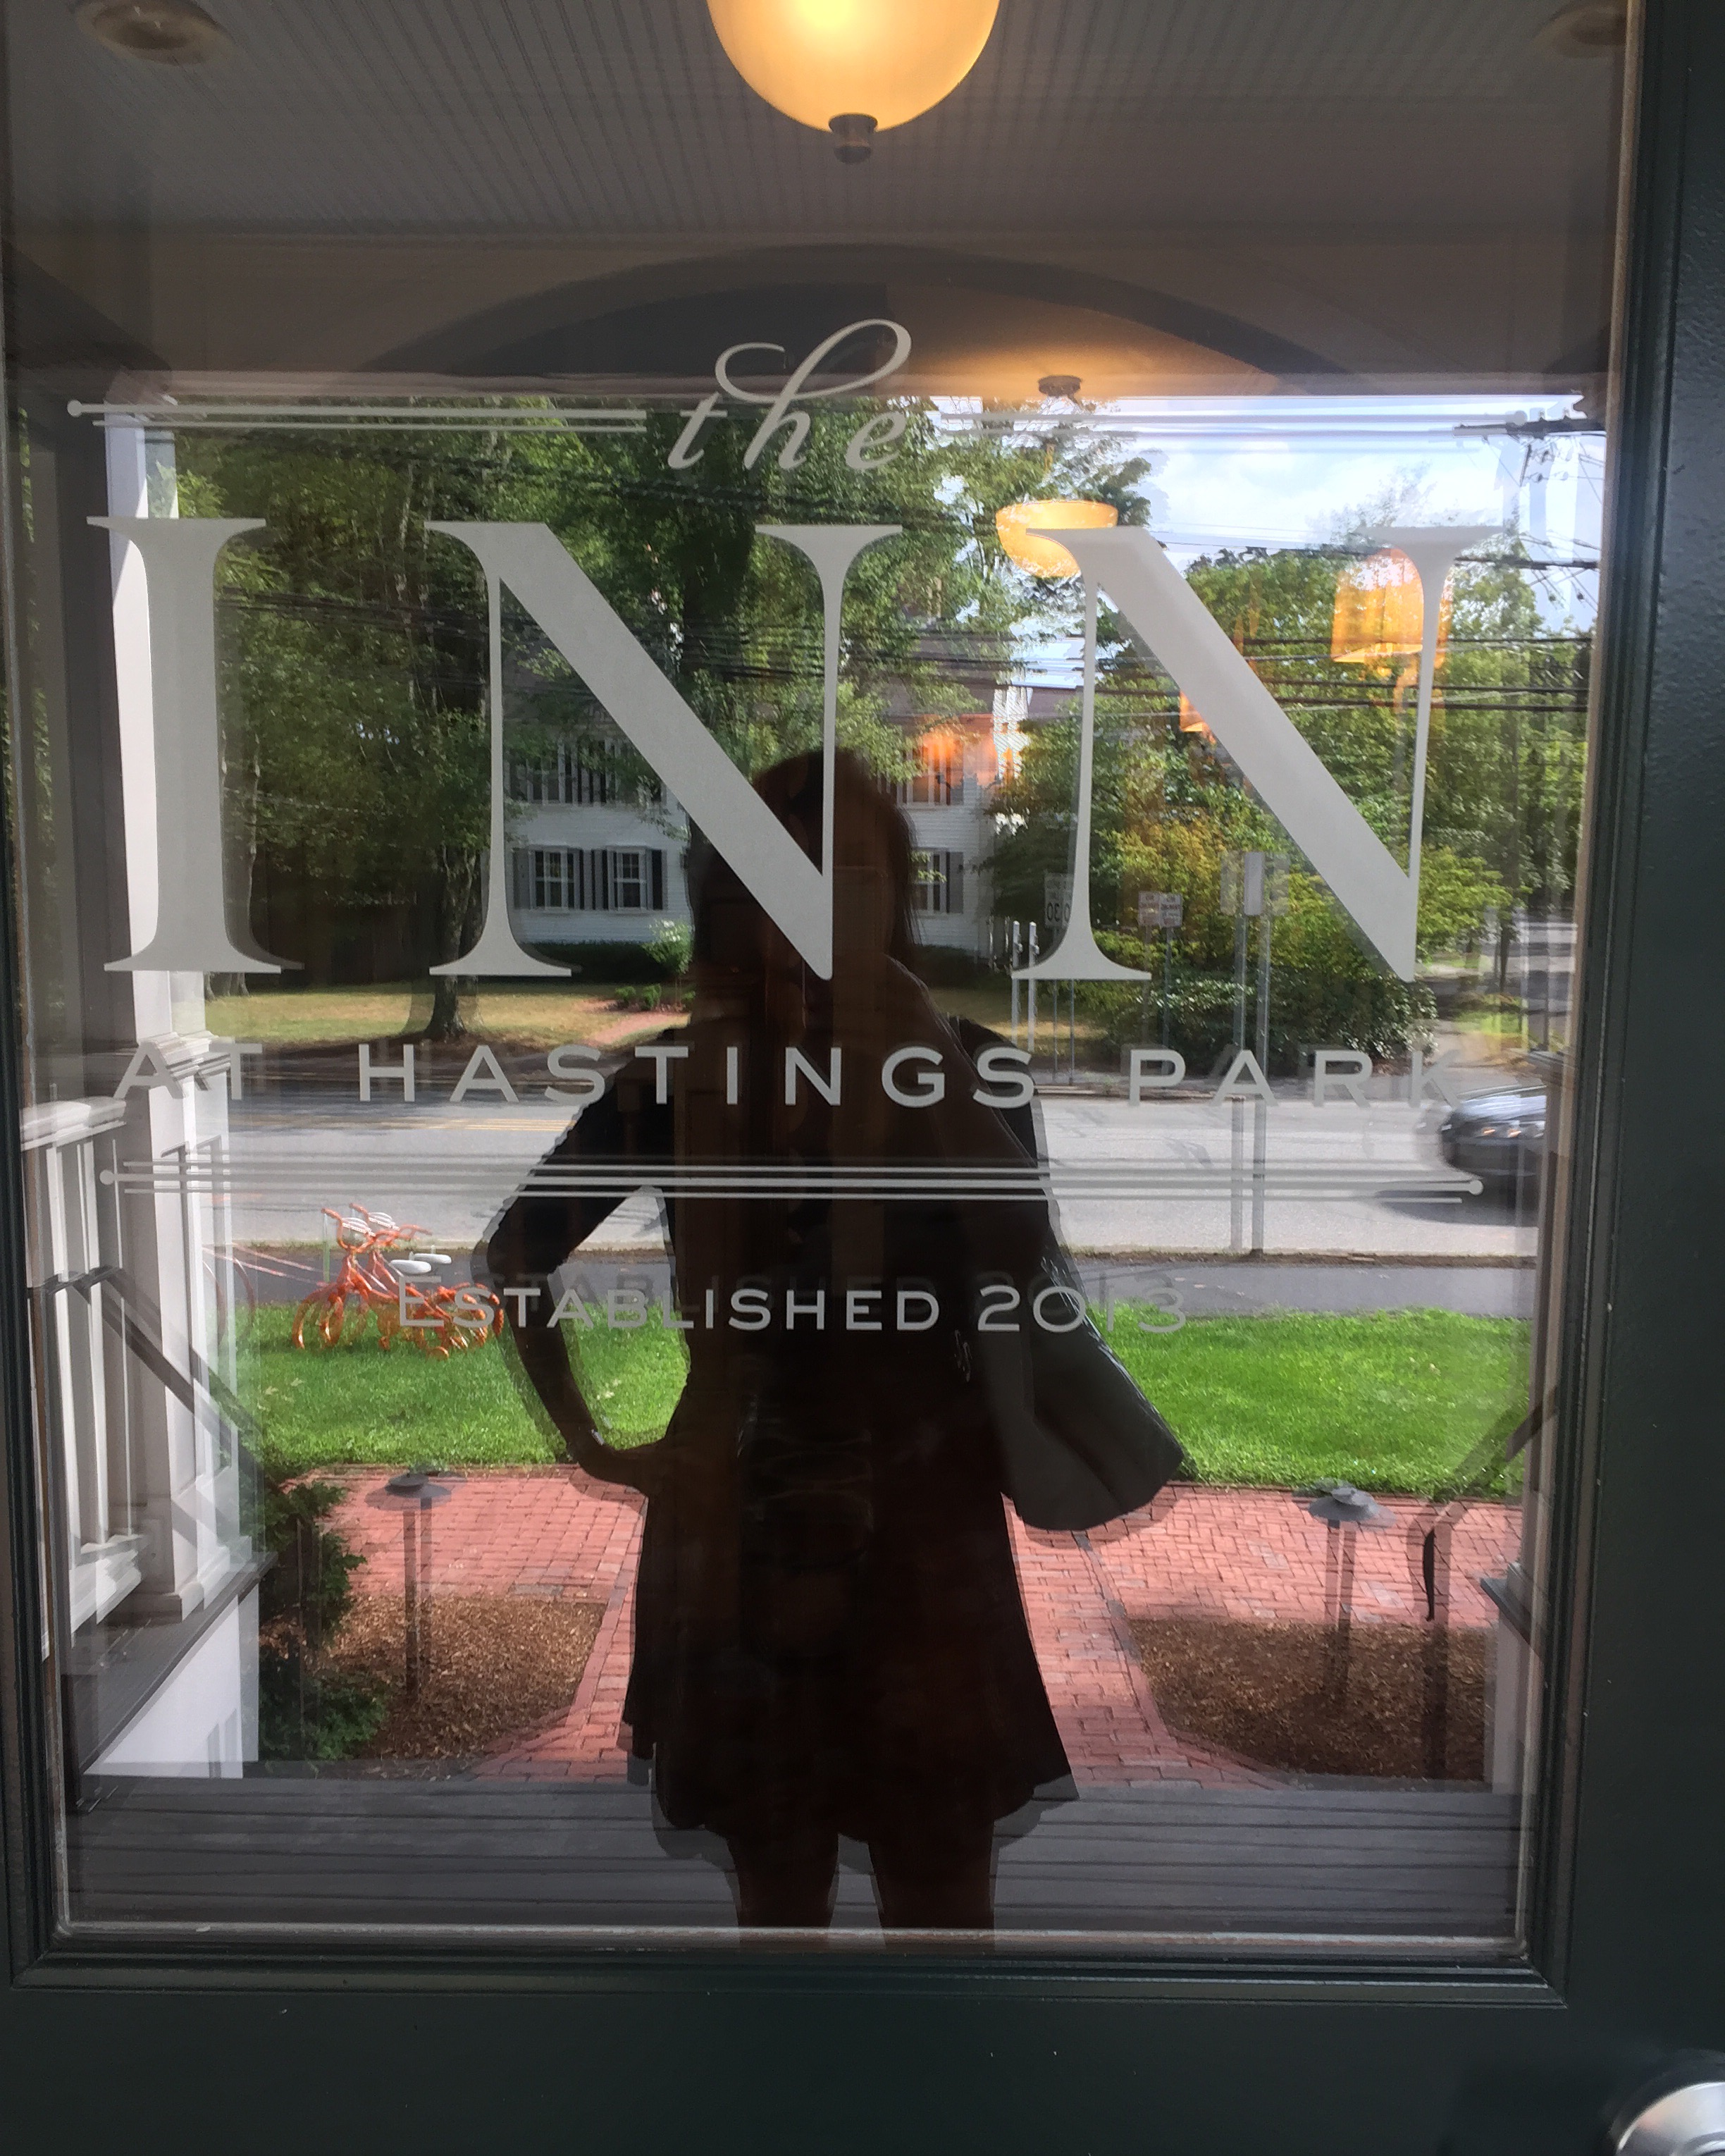 New England Fine Living visits the Inn at Hastings Park